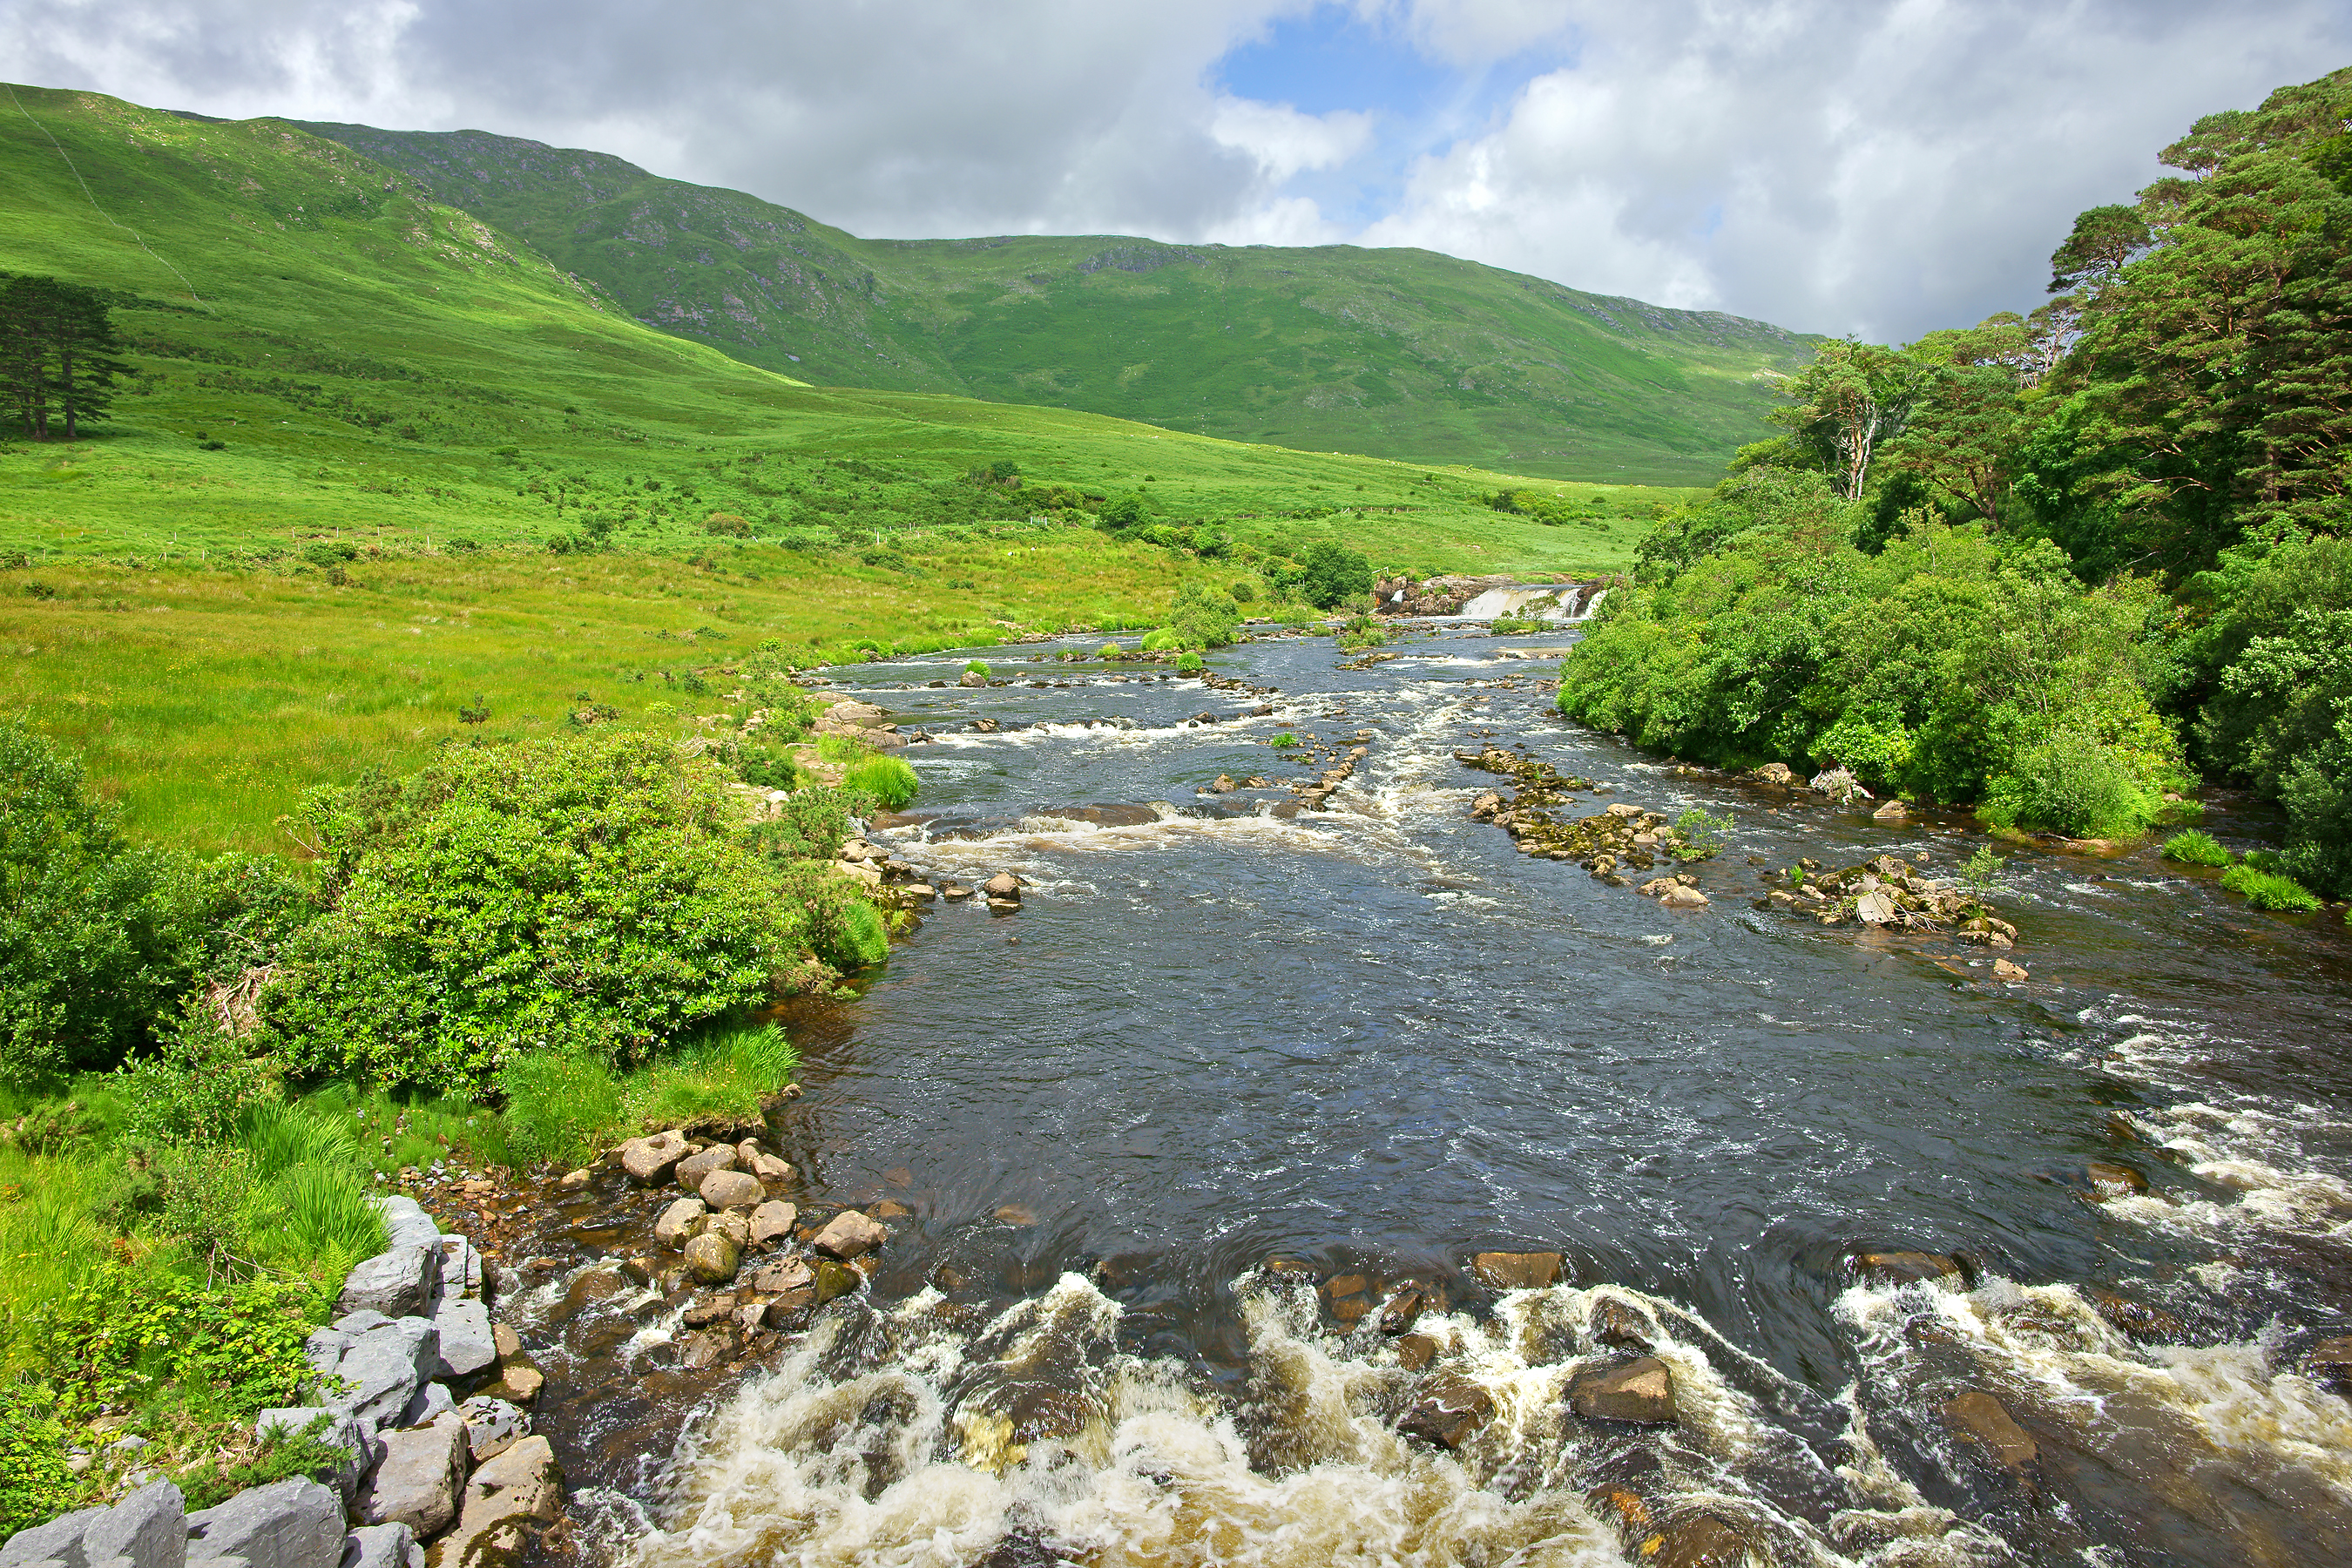 The River Erriff and Aasleagh Falls, Leenane in County Galway, Ireland. Getty